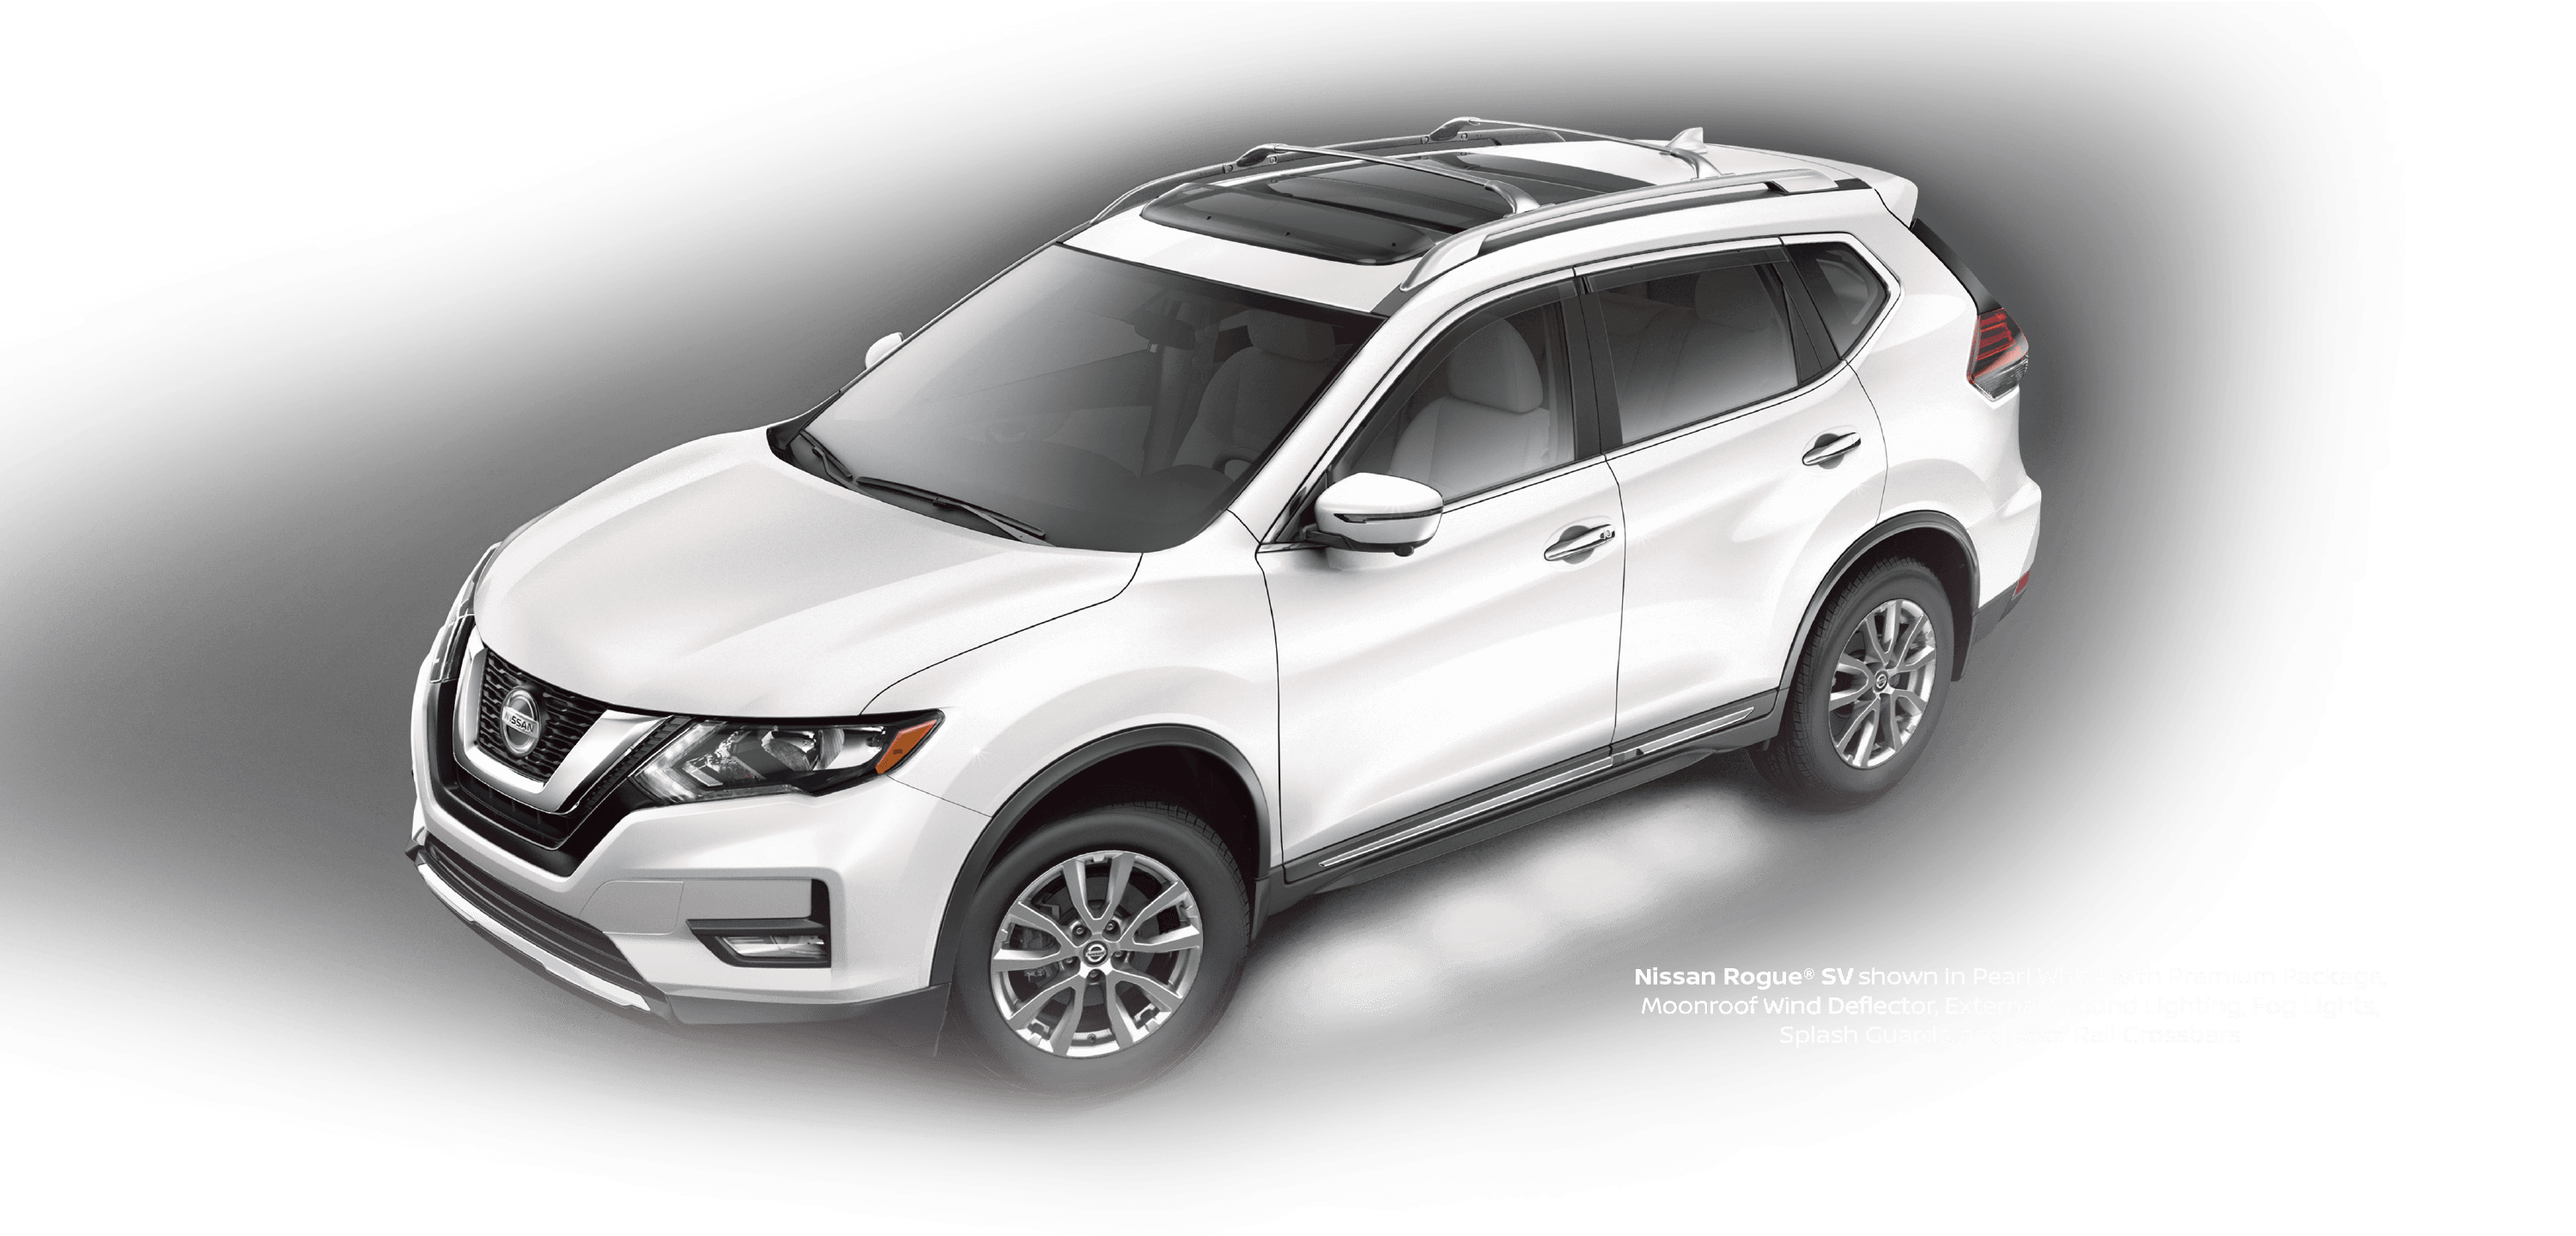 2018 Nissan Rogue Accessories.